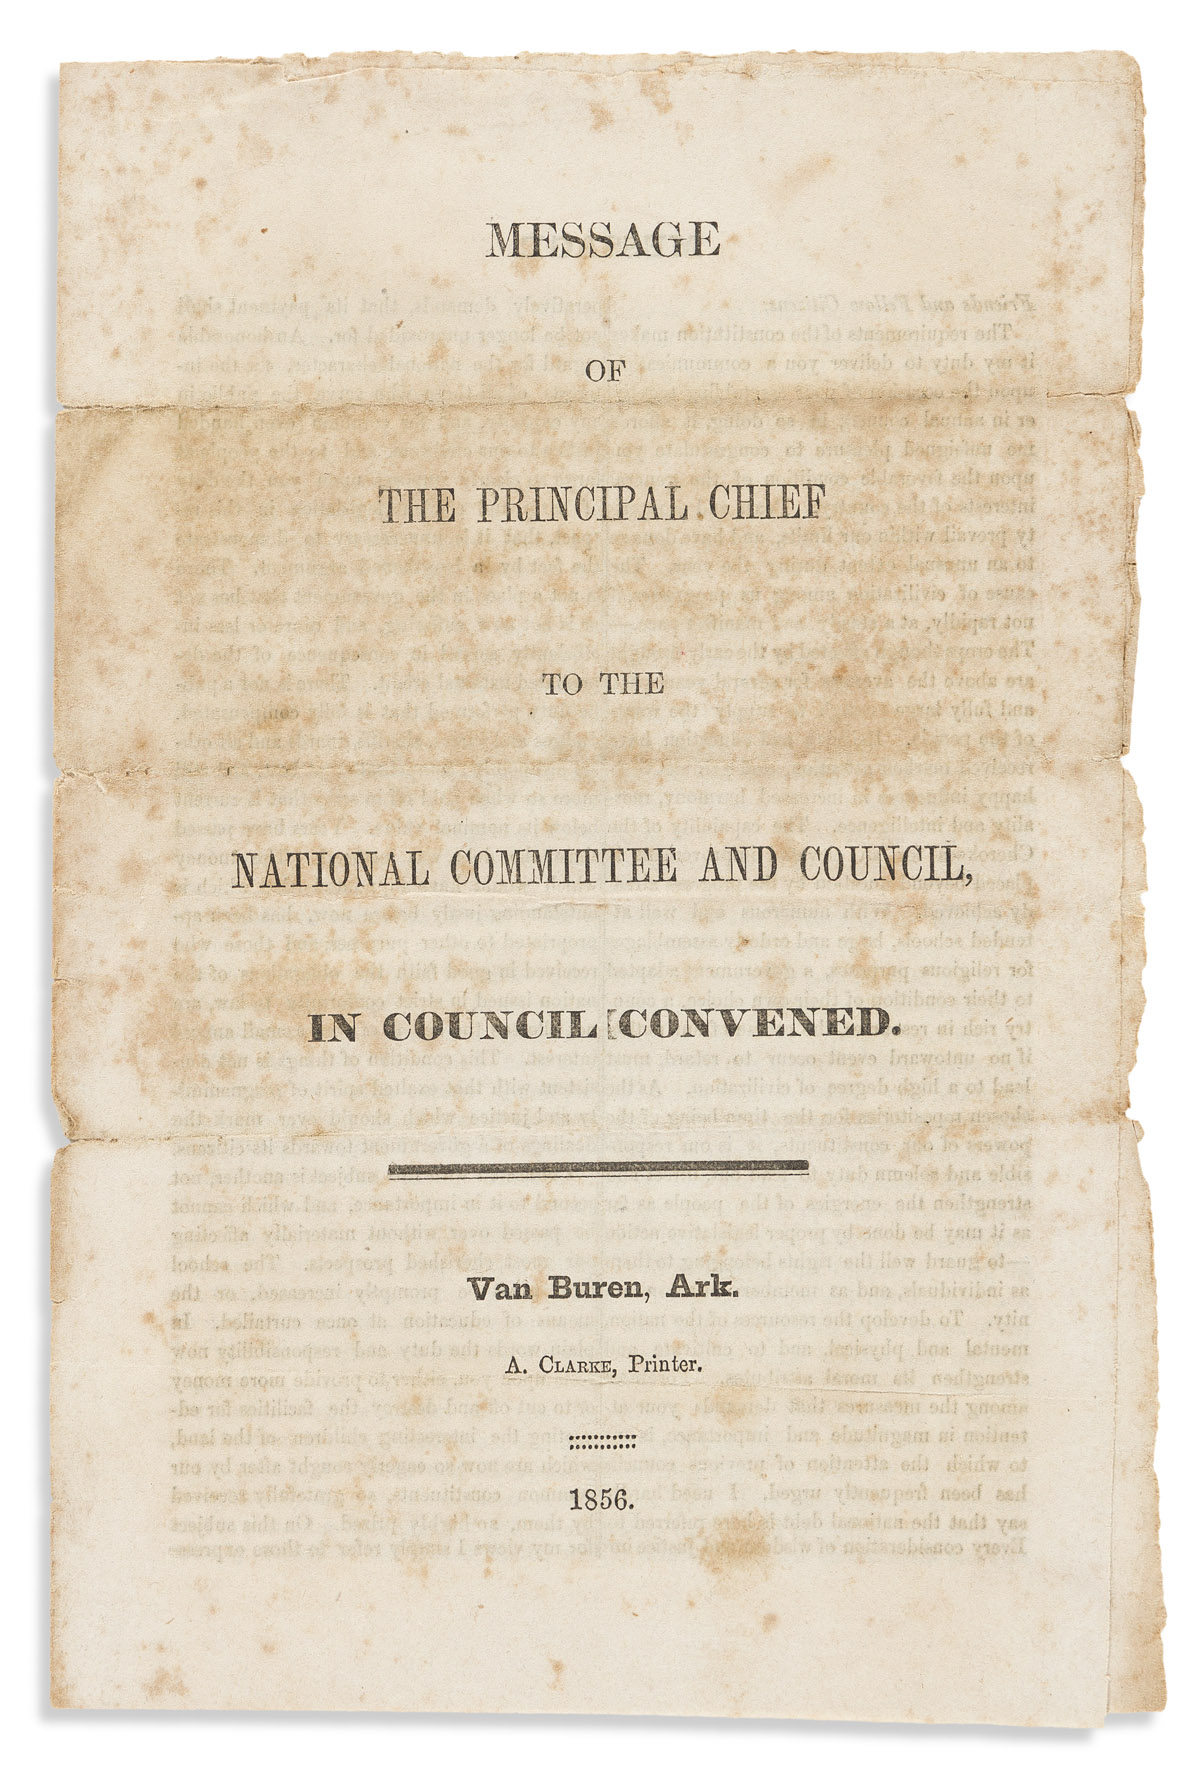 (AMERICAN INDIANS.) John Ross. Message of the Principal Chief to the National Committee and Council.